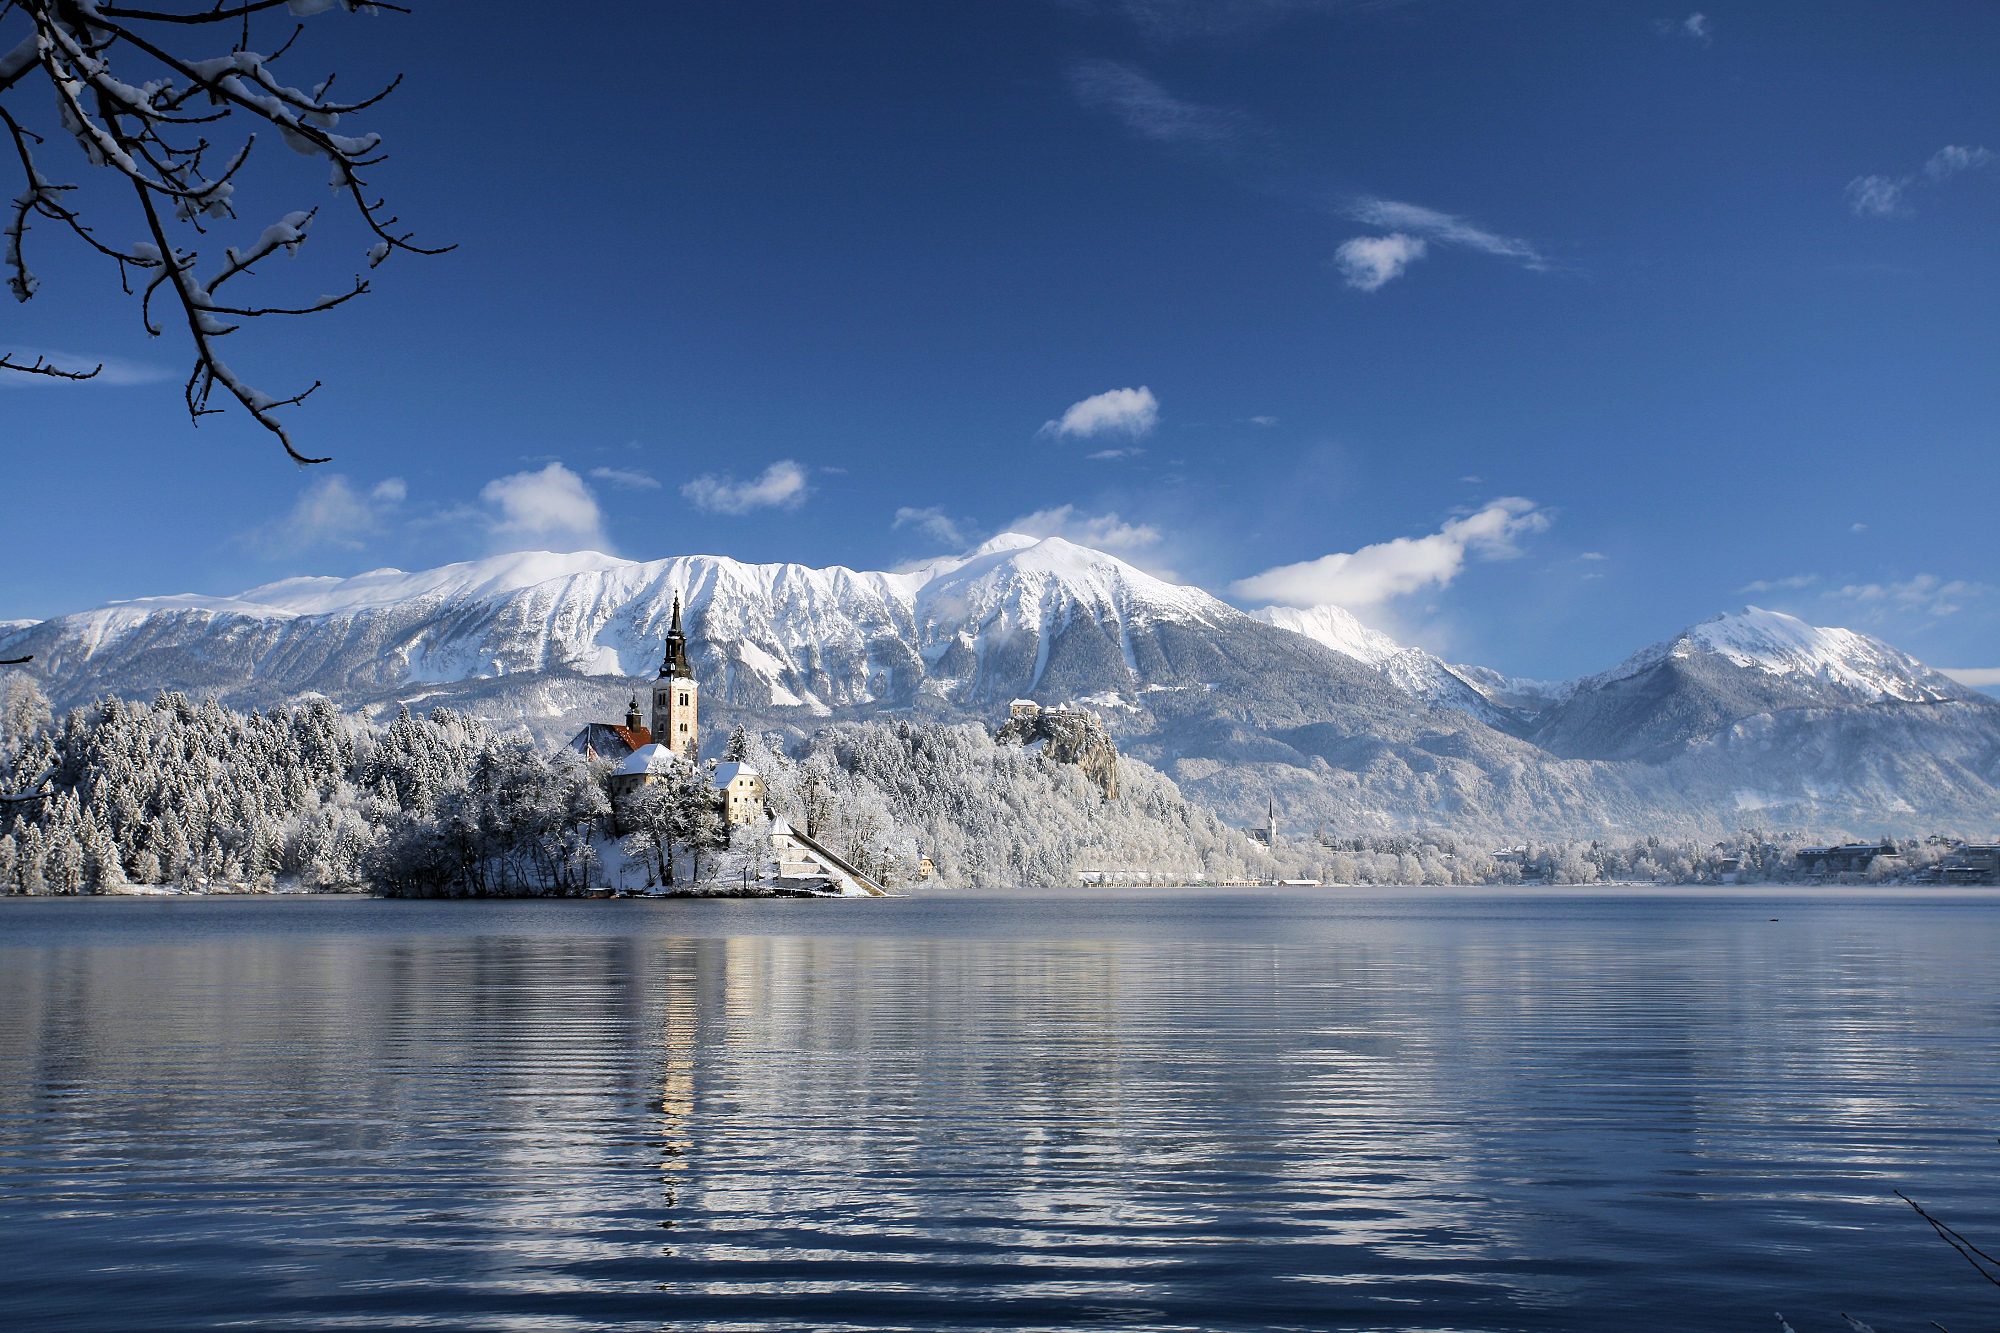 Lake Bled in winter covered with snow